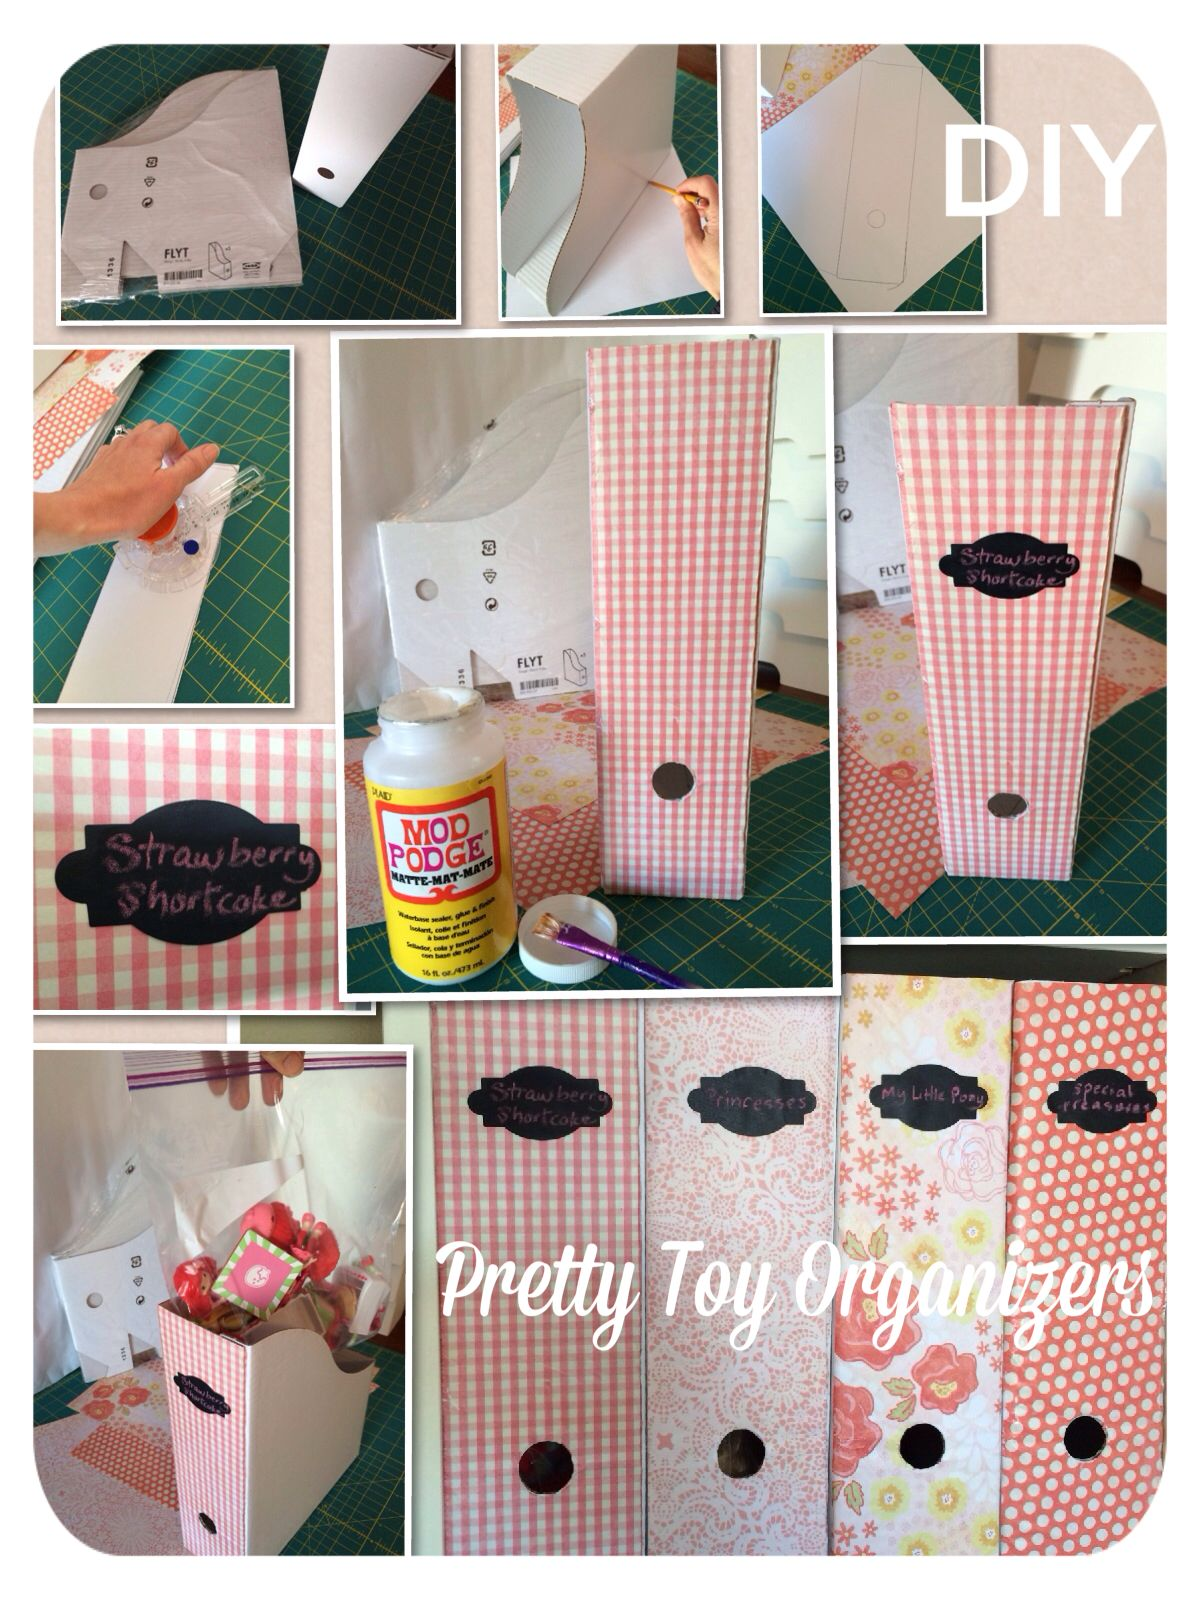 Ikea Box Holder Ikea Flyt Magazine Holders Get An Easy Makeover With Scrapbook